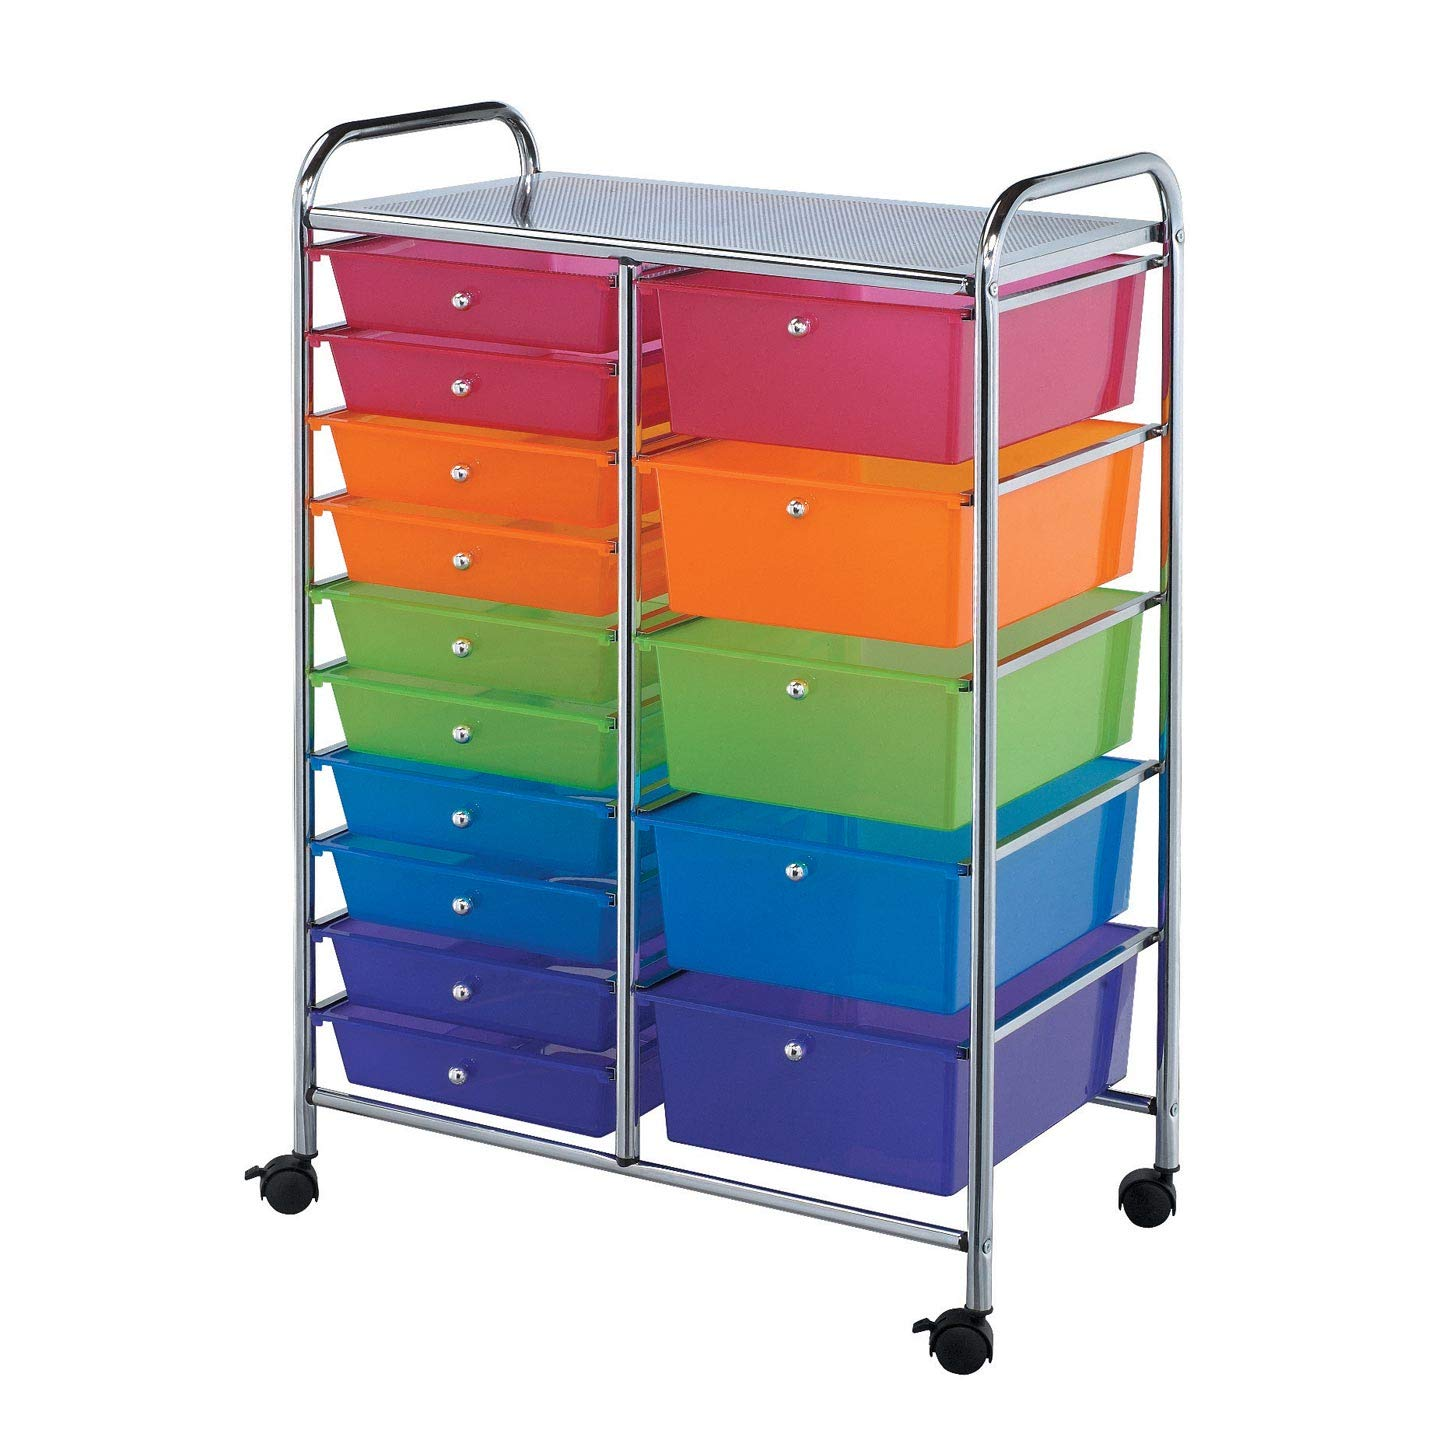 Bulk Buy: Darice DIY Crafts Double Tier, 15 Bin Rolling Storage Silver and Multicolor 37.8 inches (3-Pack 2026-105